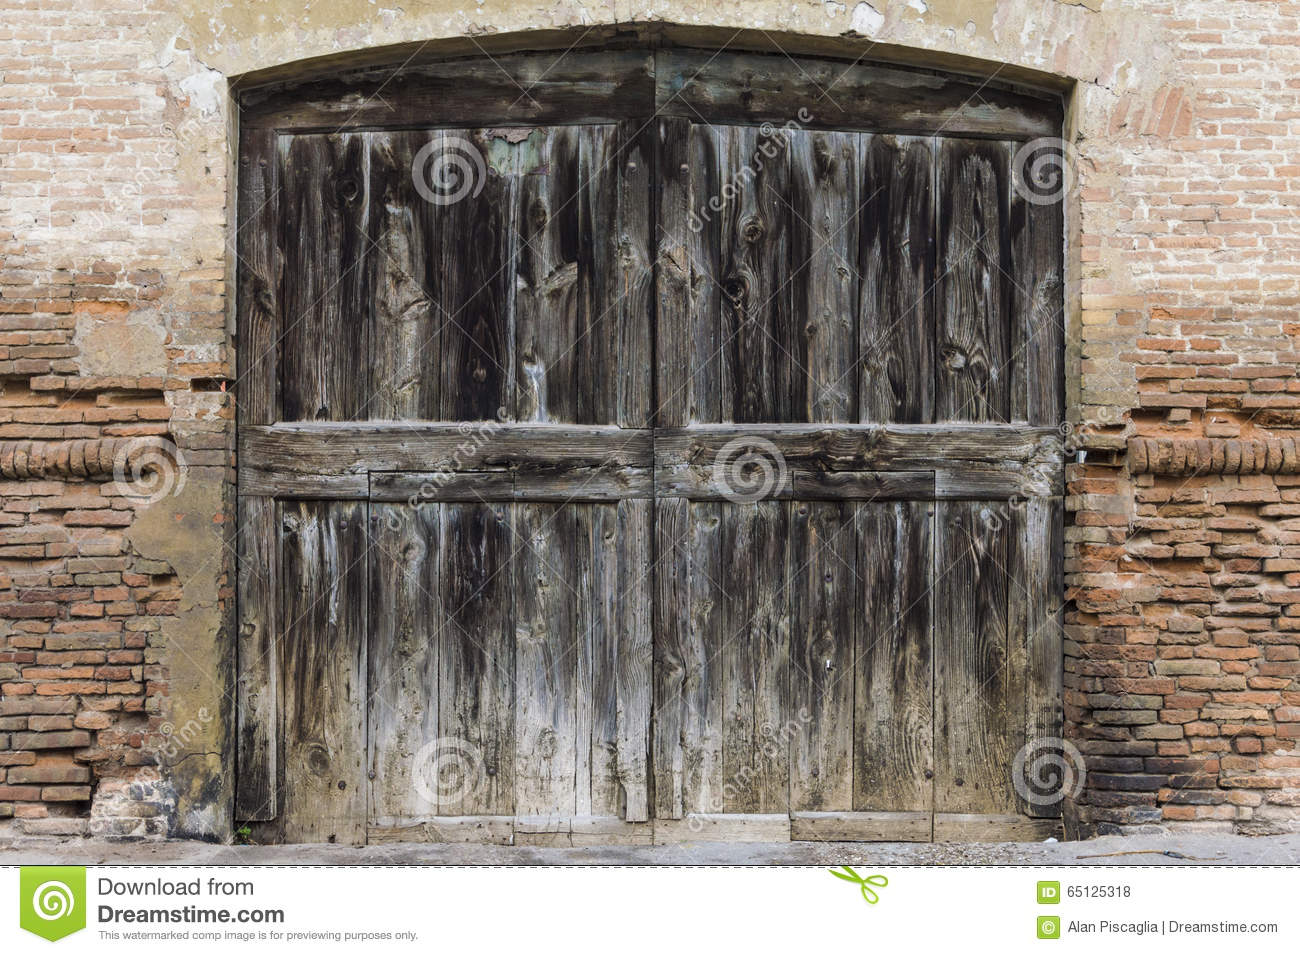 Royalty-Free Stock Photo. Download Old Big Wood Door ... & Old Big Wood Door Stock Photo - Image: 65125318 Pezcame.Com